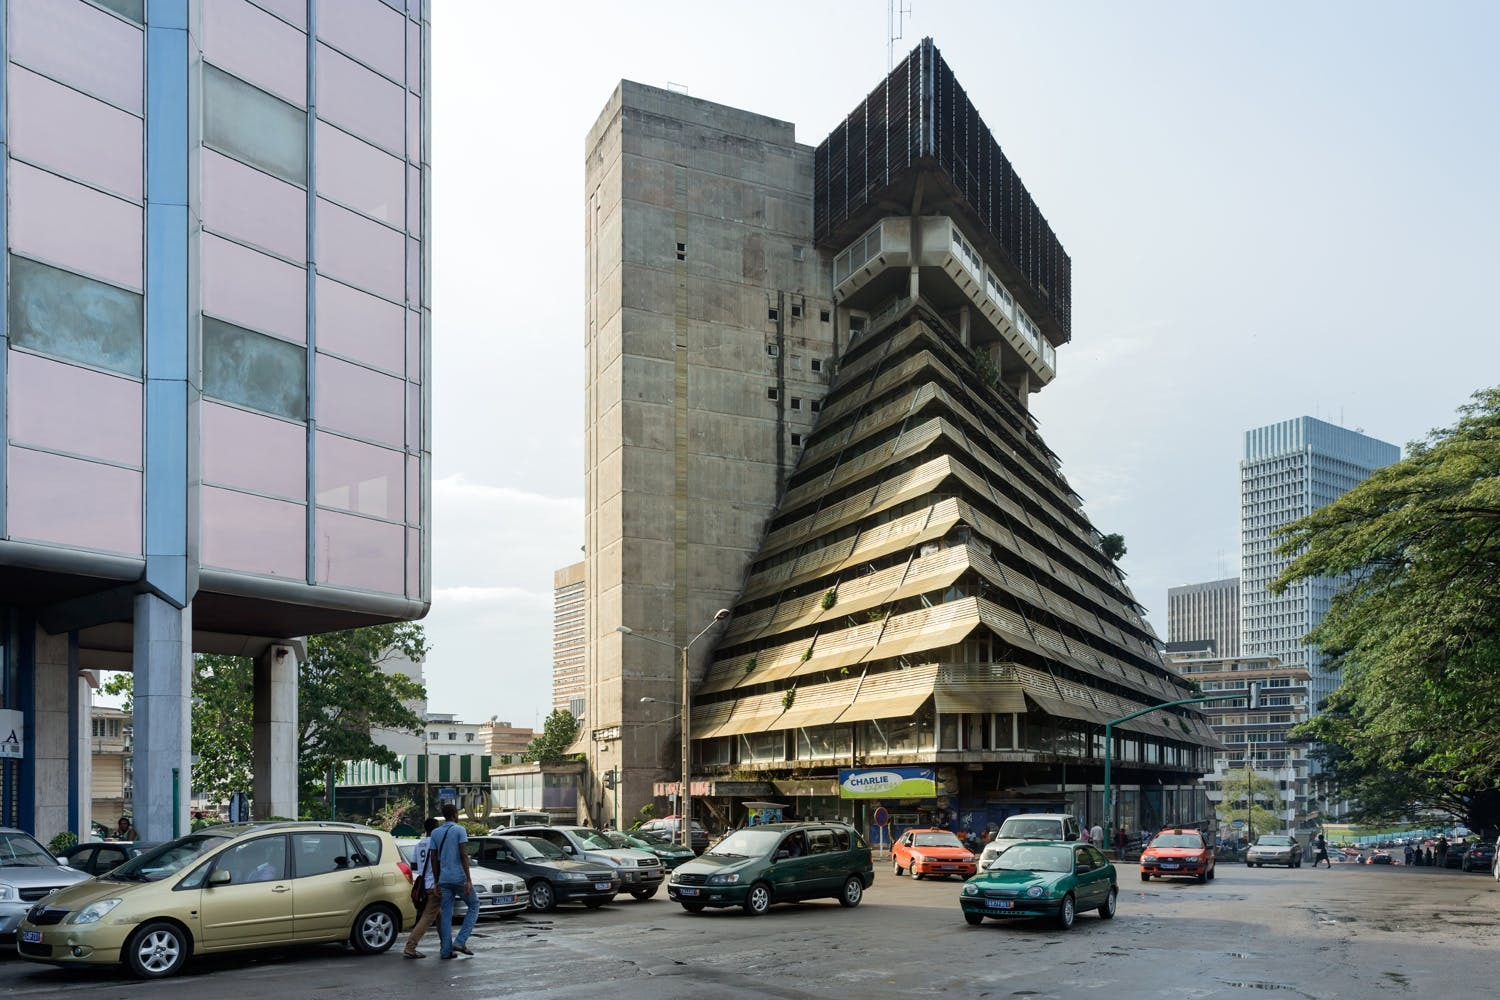 100 Fantastique Suggestions Architecture En Cote D Ivoire